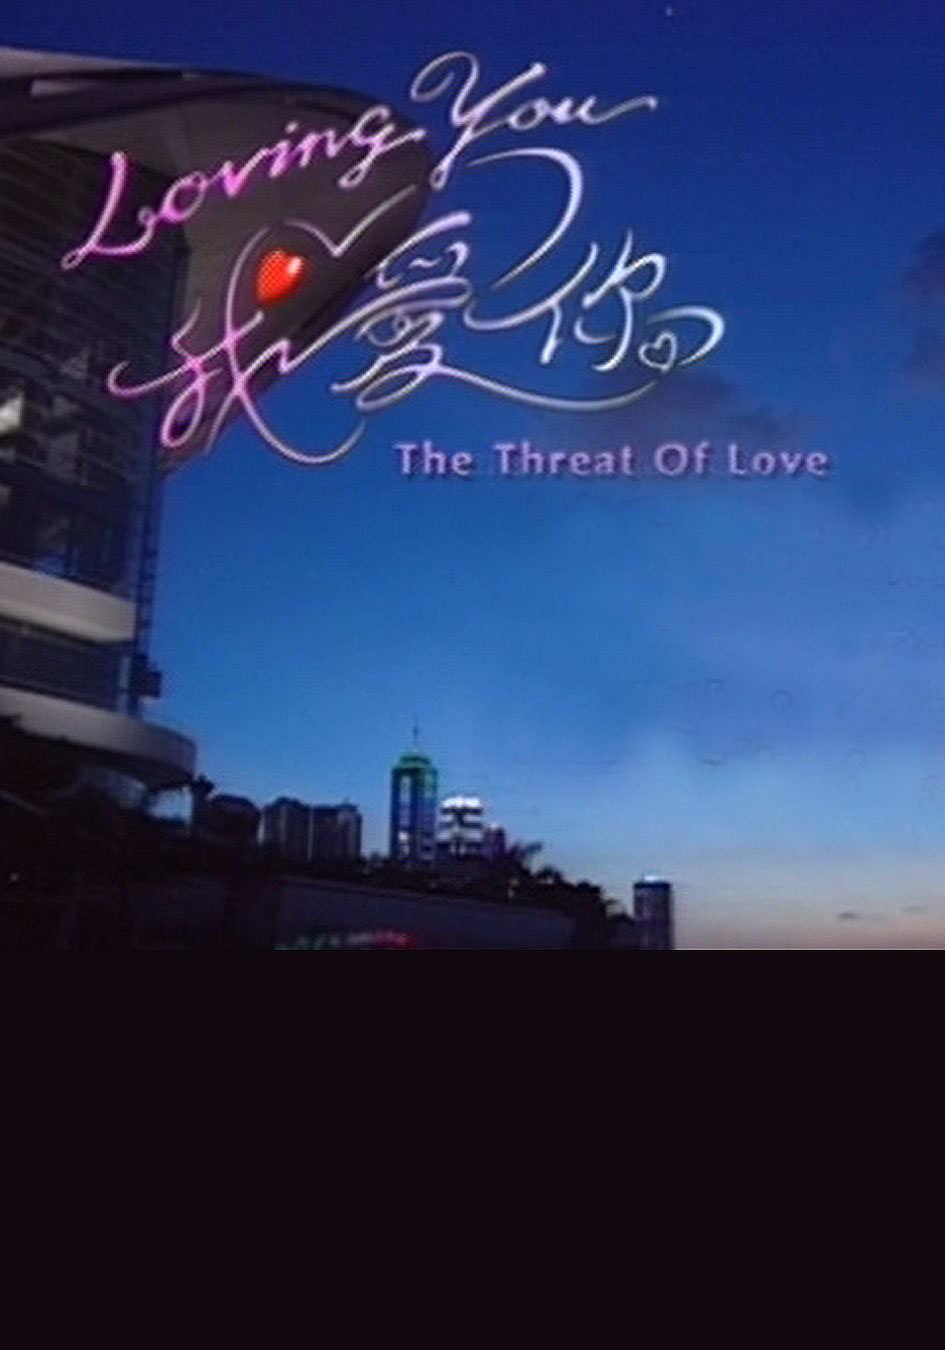 Loving You 我愛你-The Threat Of Love